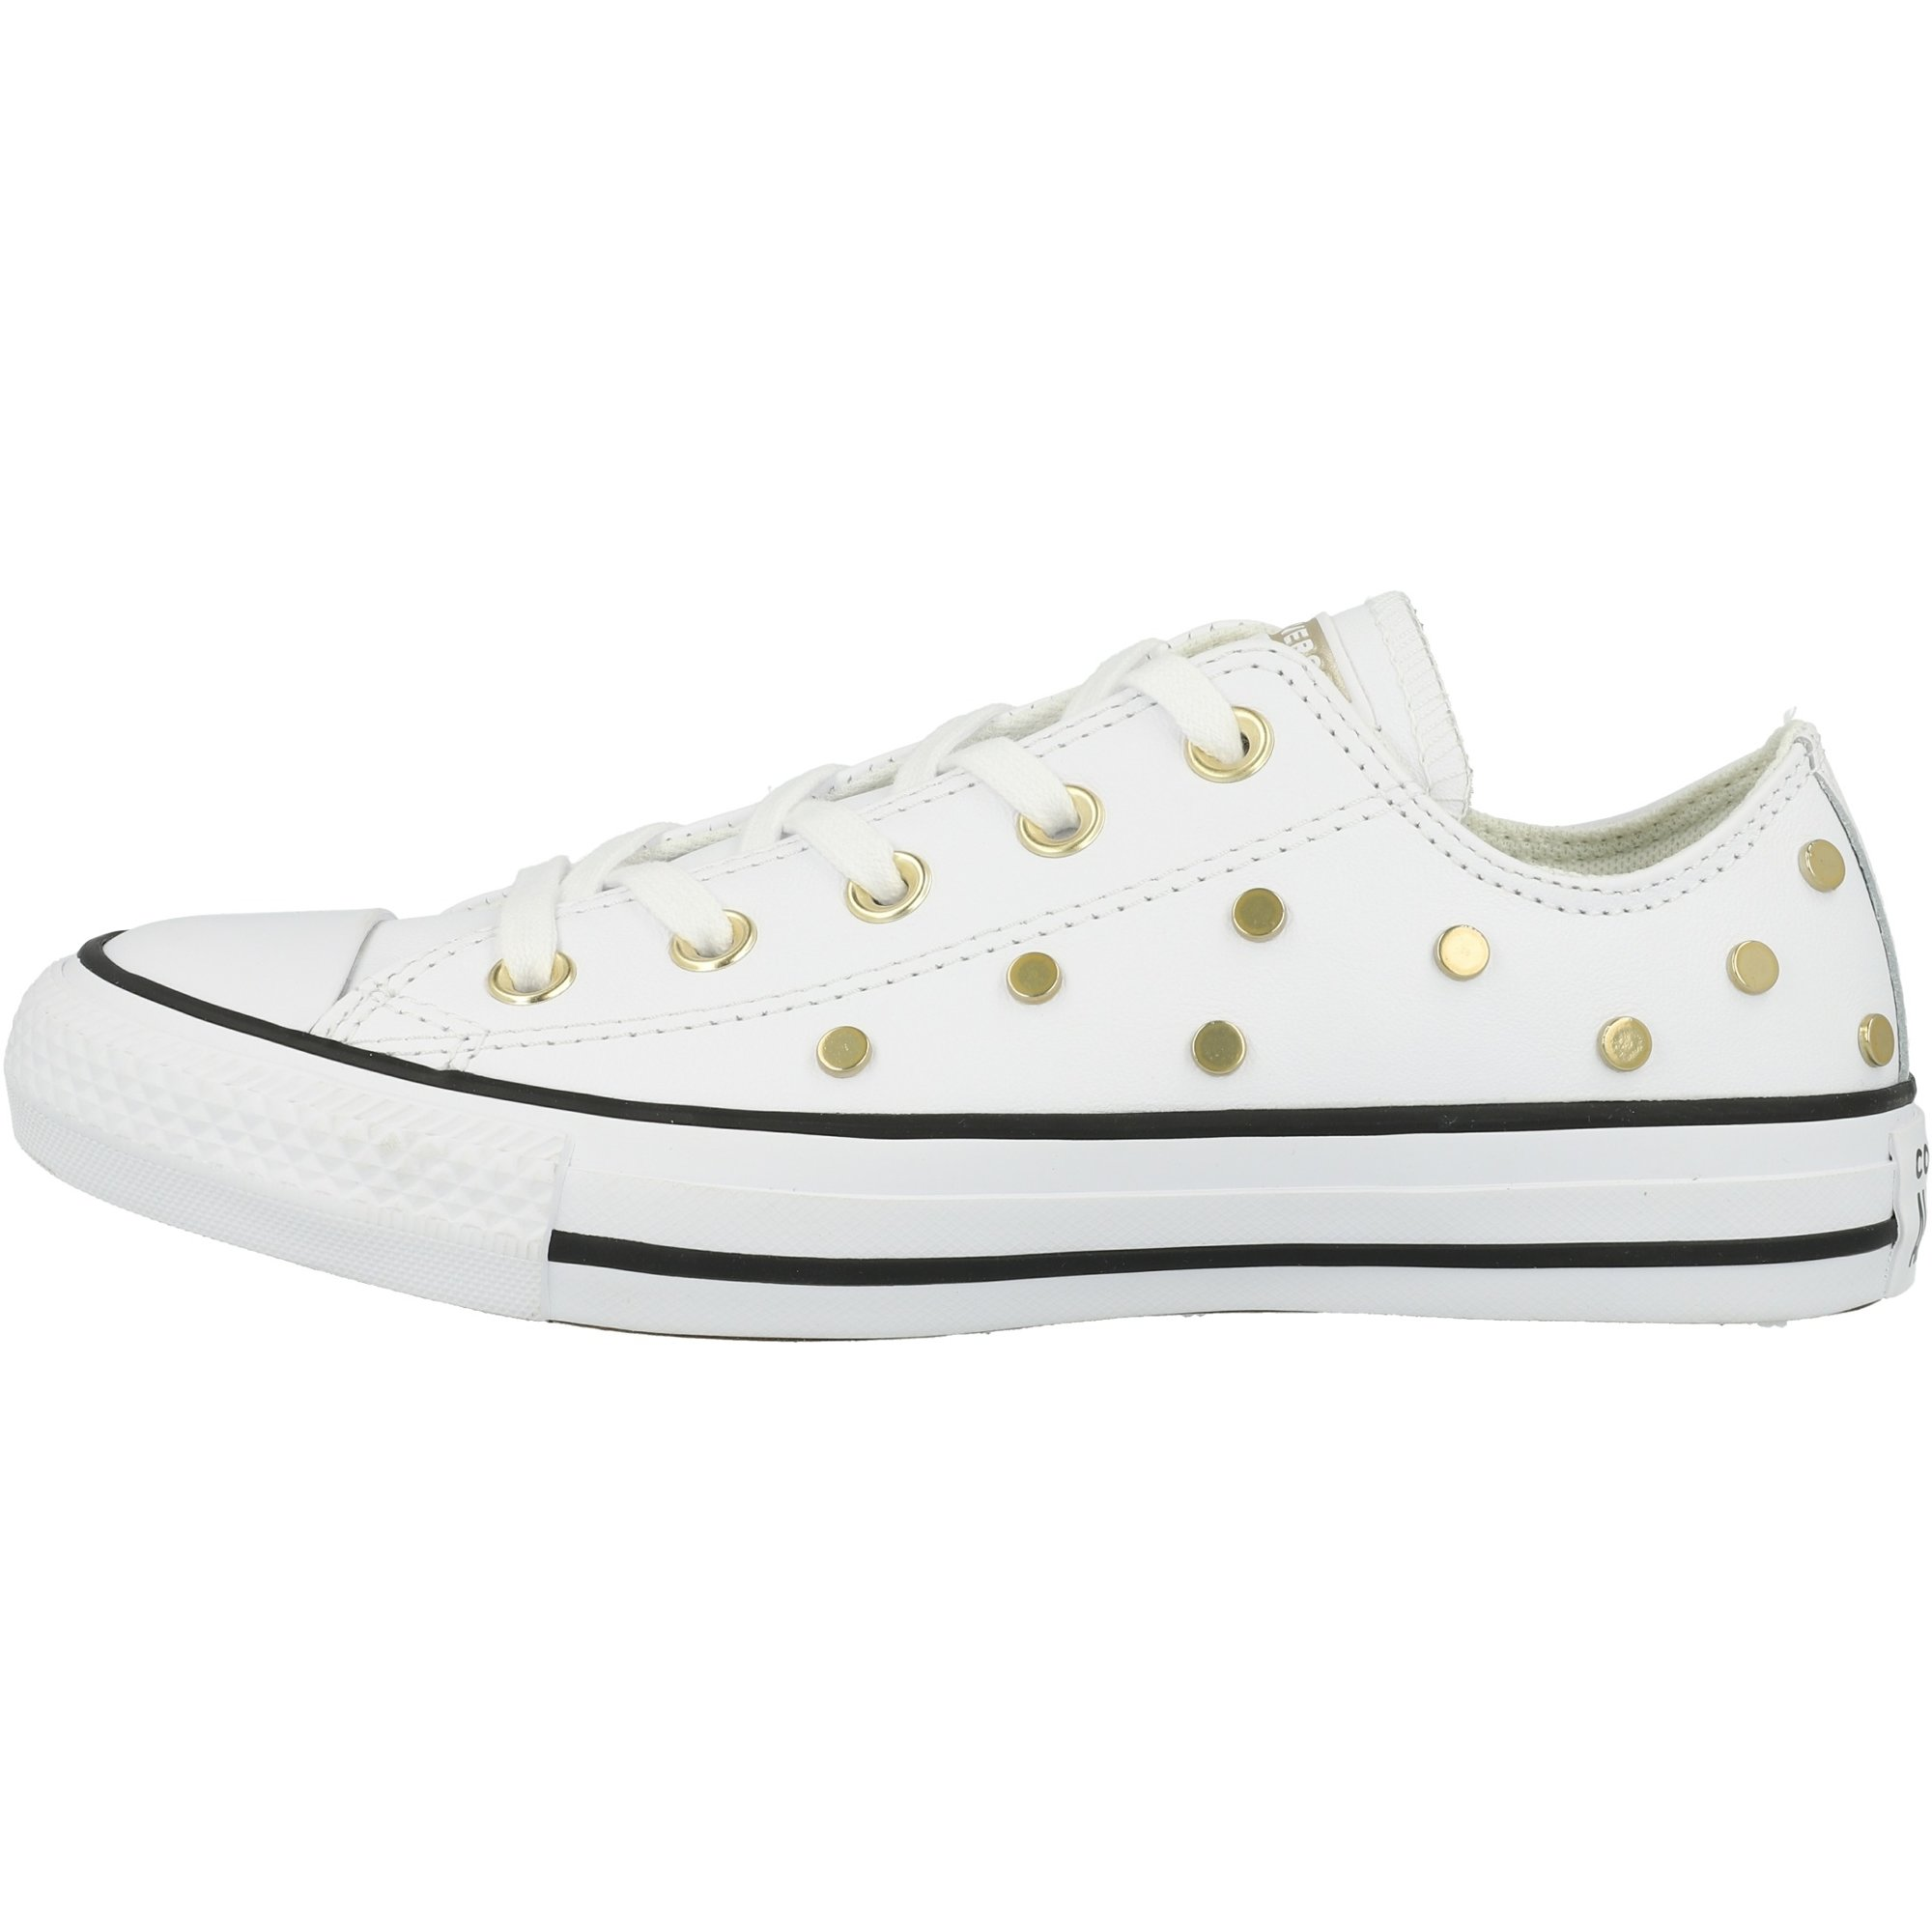 Converse Chuck Taylor All Star Ox Leather Studs WhiteBlackLight Gold Leather Adult